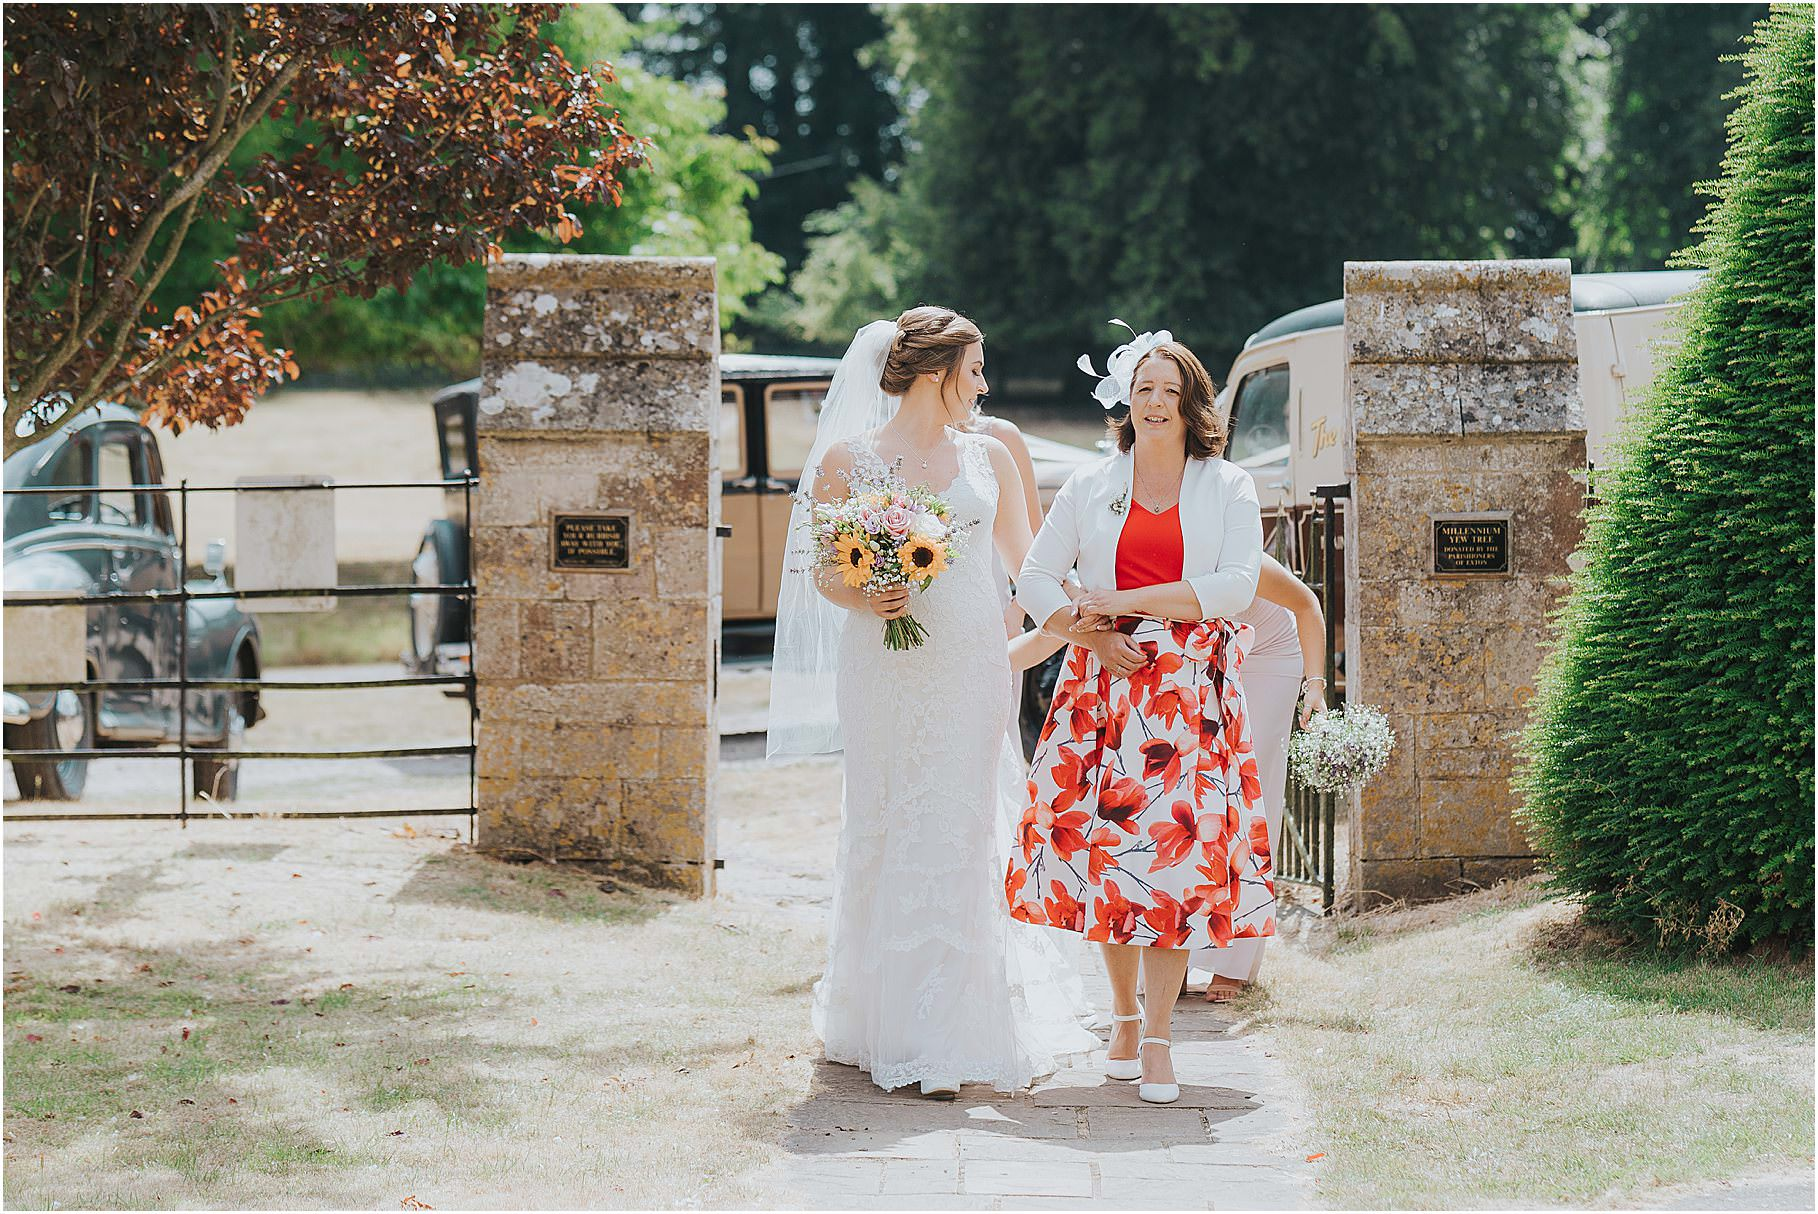 Rutland Weddings Exton Hall Exton Oakham Rutland Water Photographer 1043 - Mr and Mrs Barker // RUTLAND WEDDING